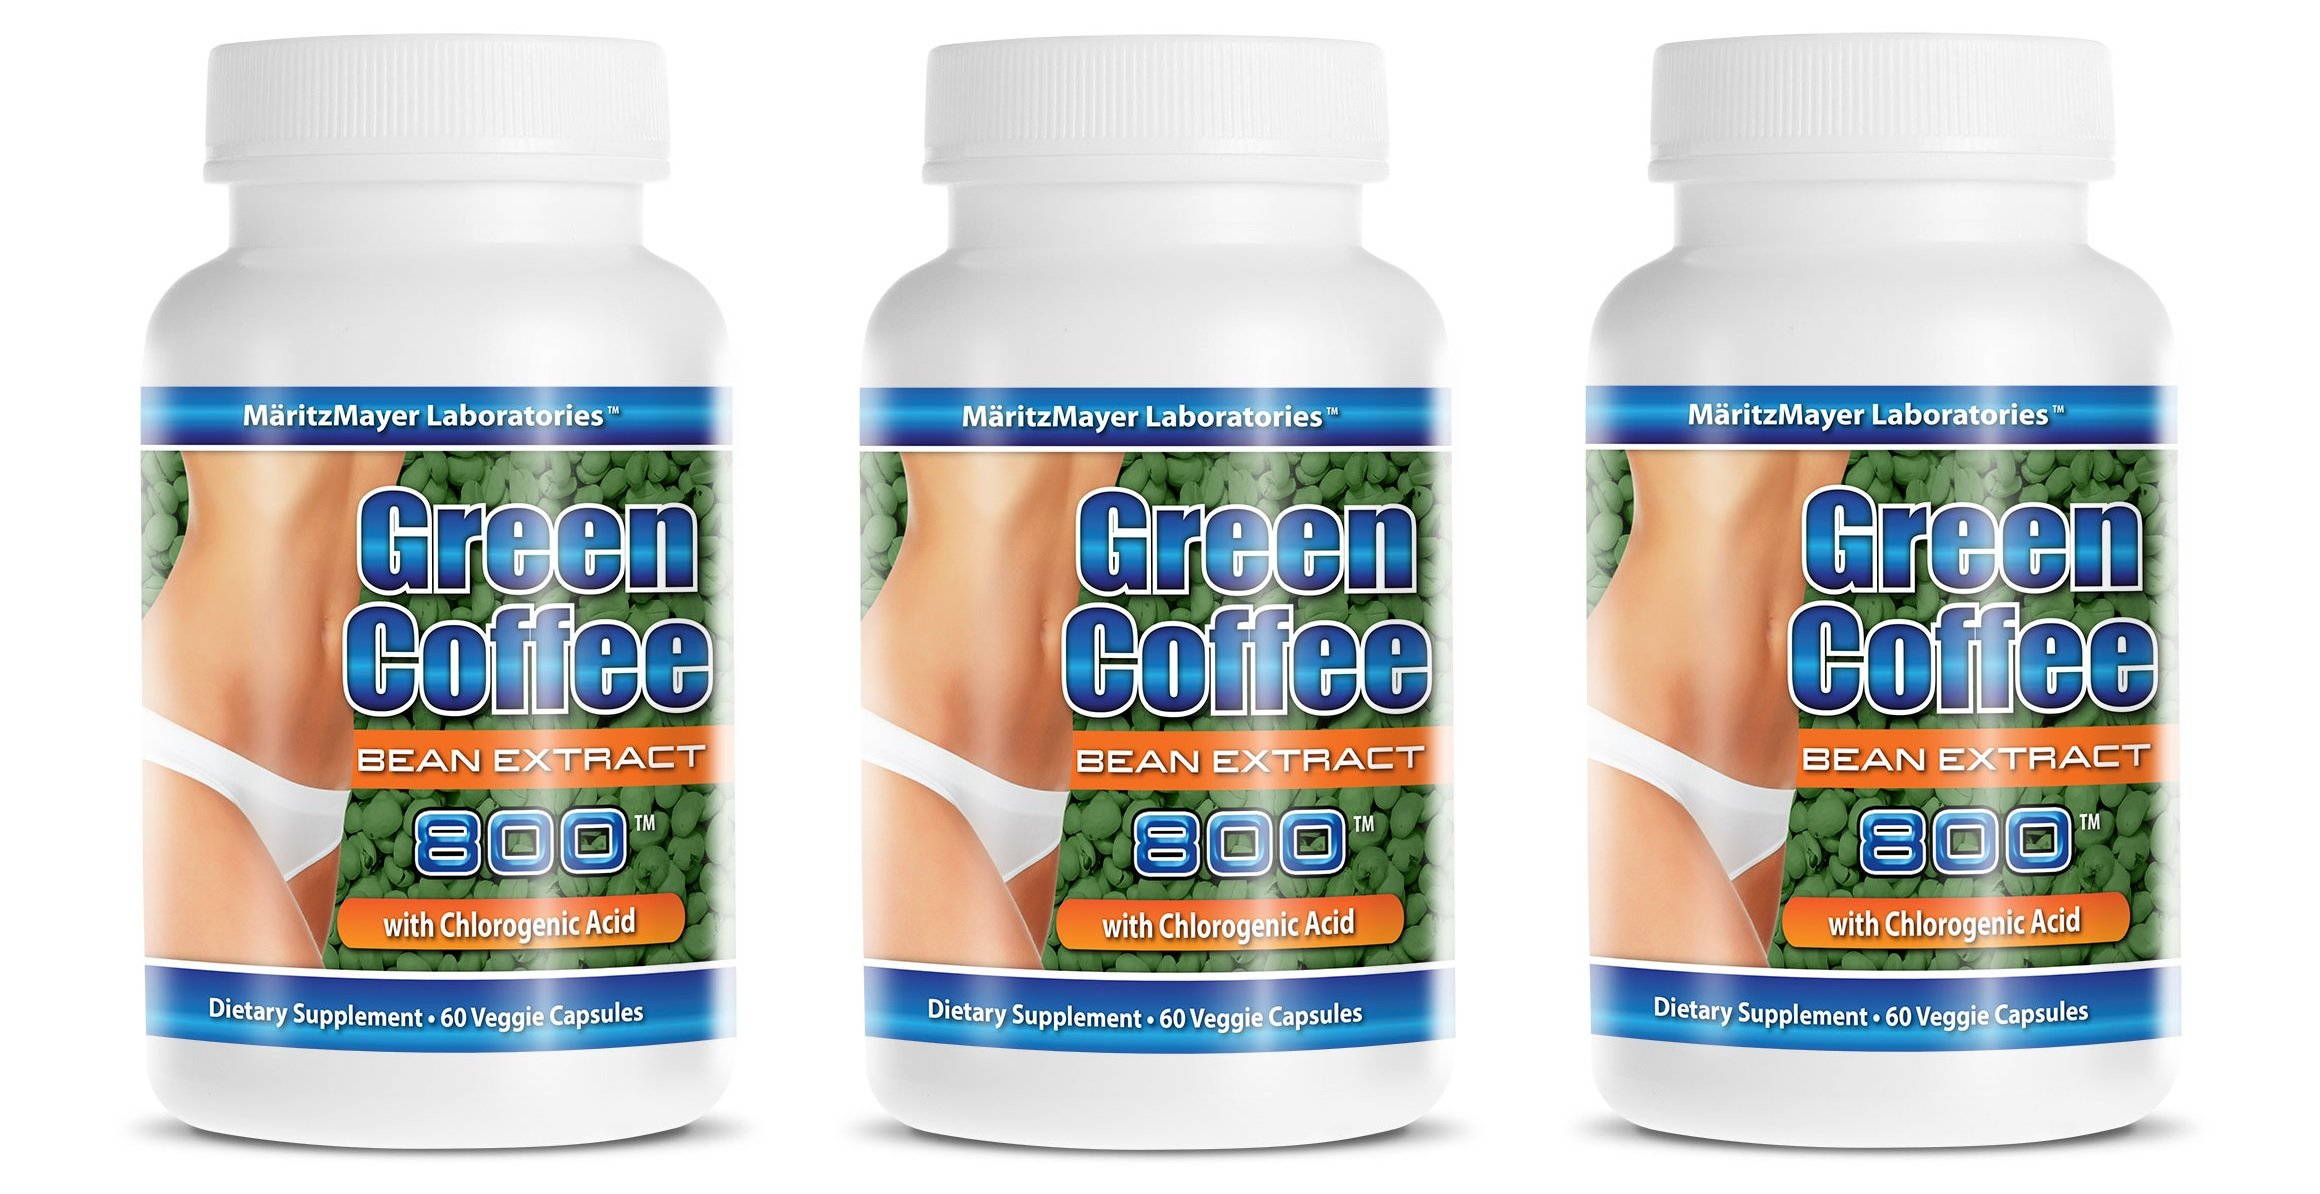 Pure Super Green Coffee Extract 800mg, 180 Capsules by MaritzMayer Laboratories